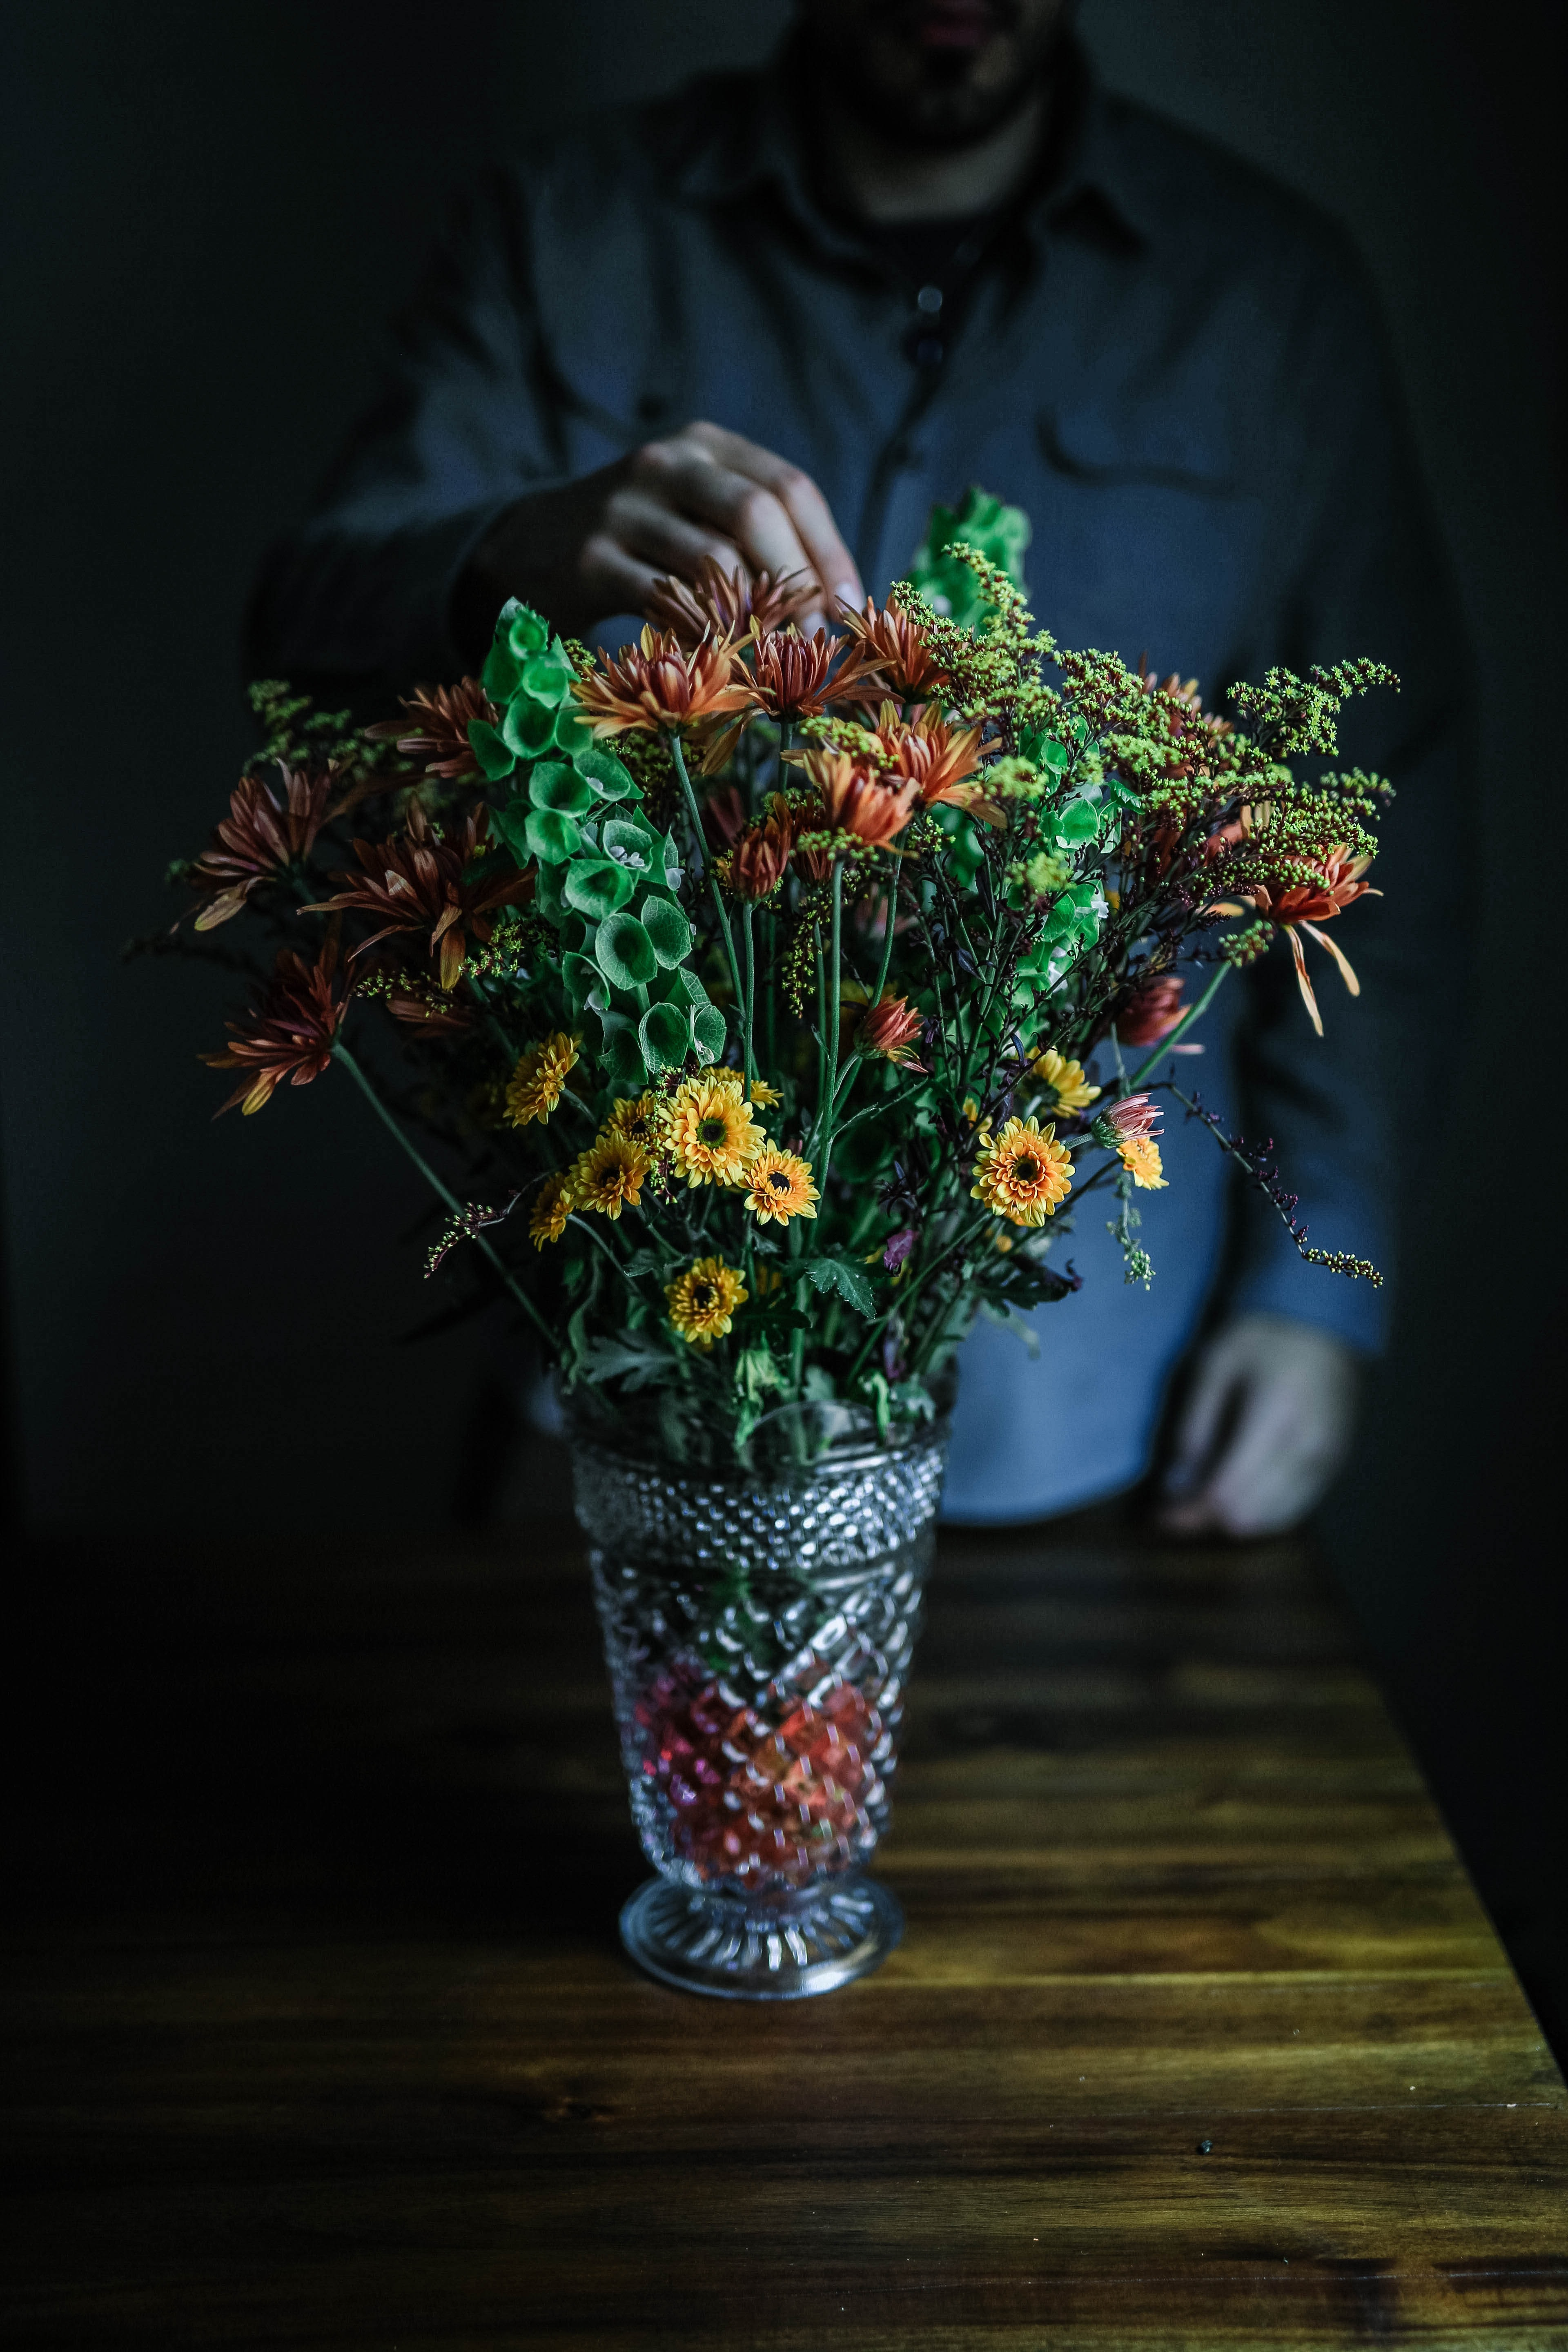 person touching vase of flowers